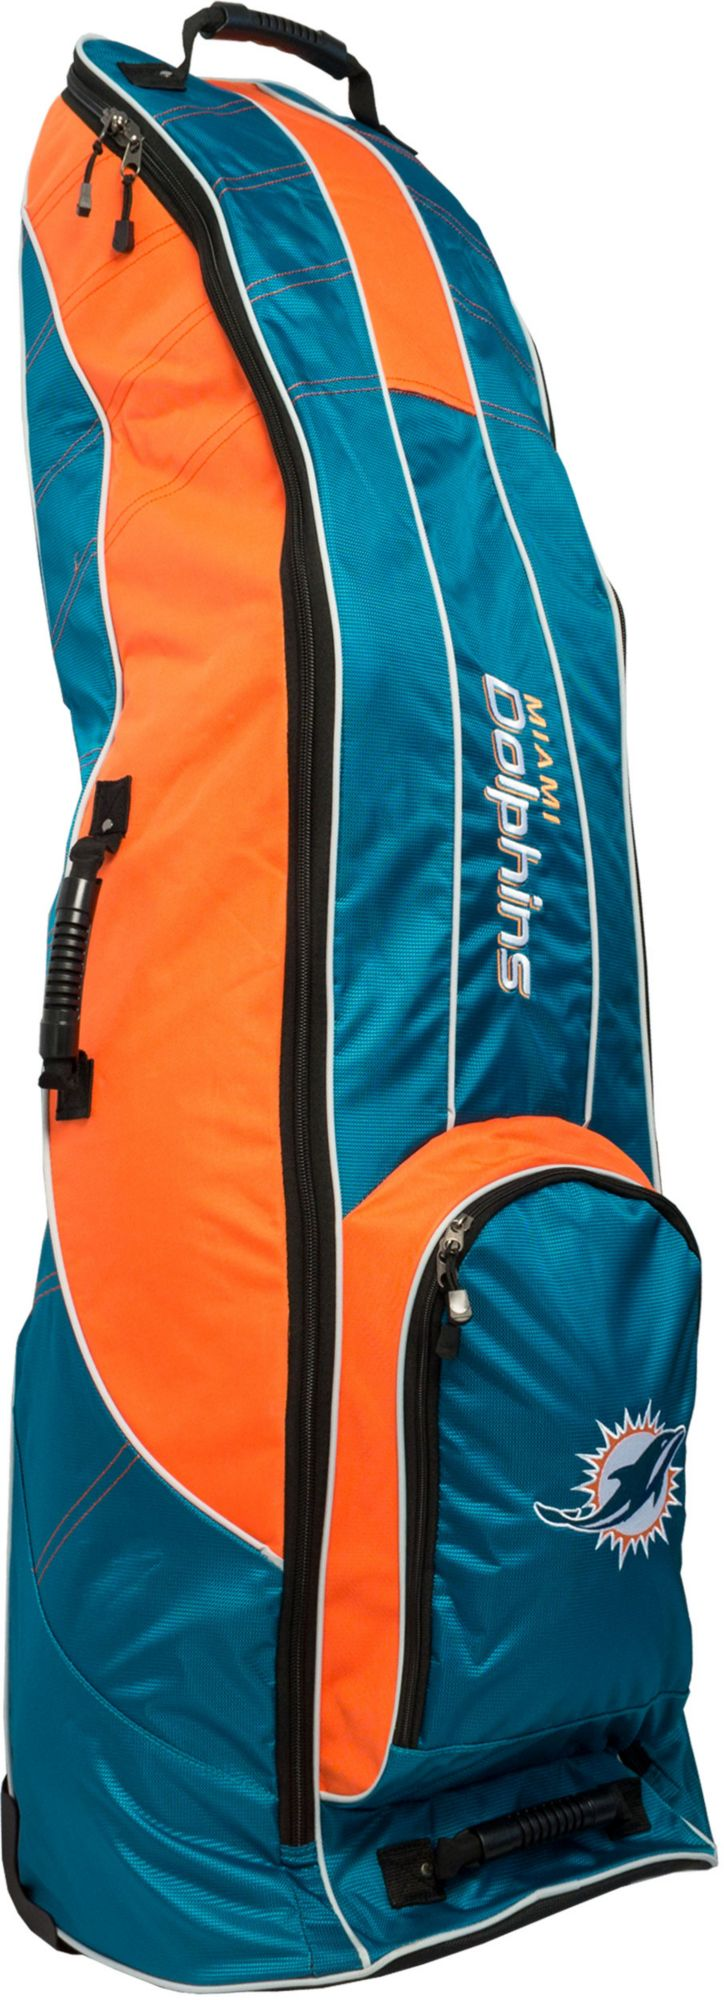 Team Golf Miami Dolphins Travel Cover